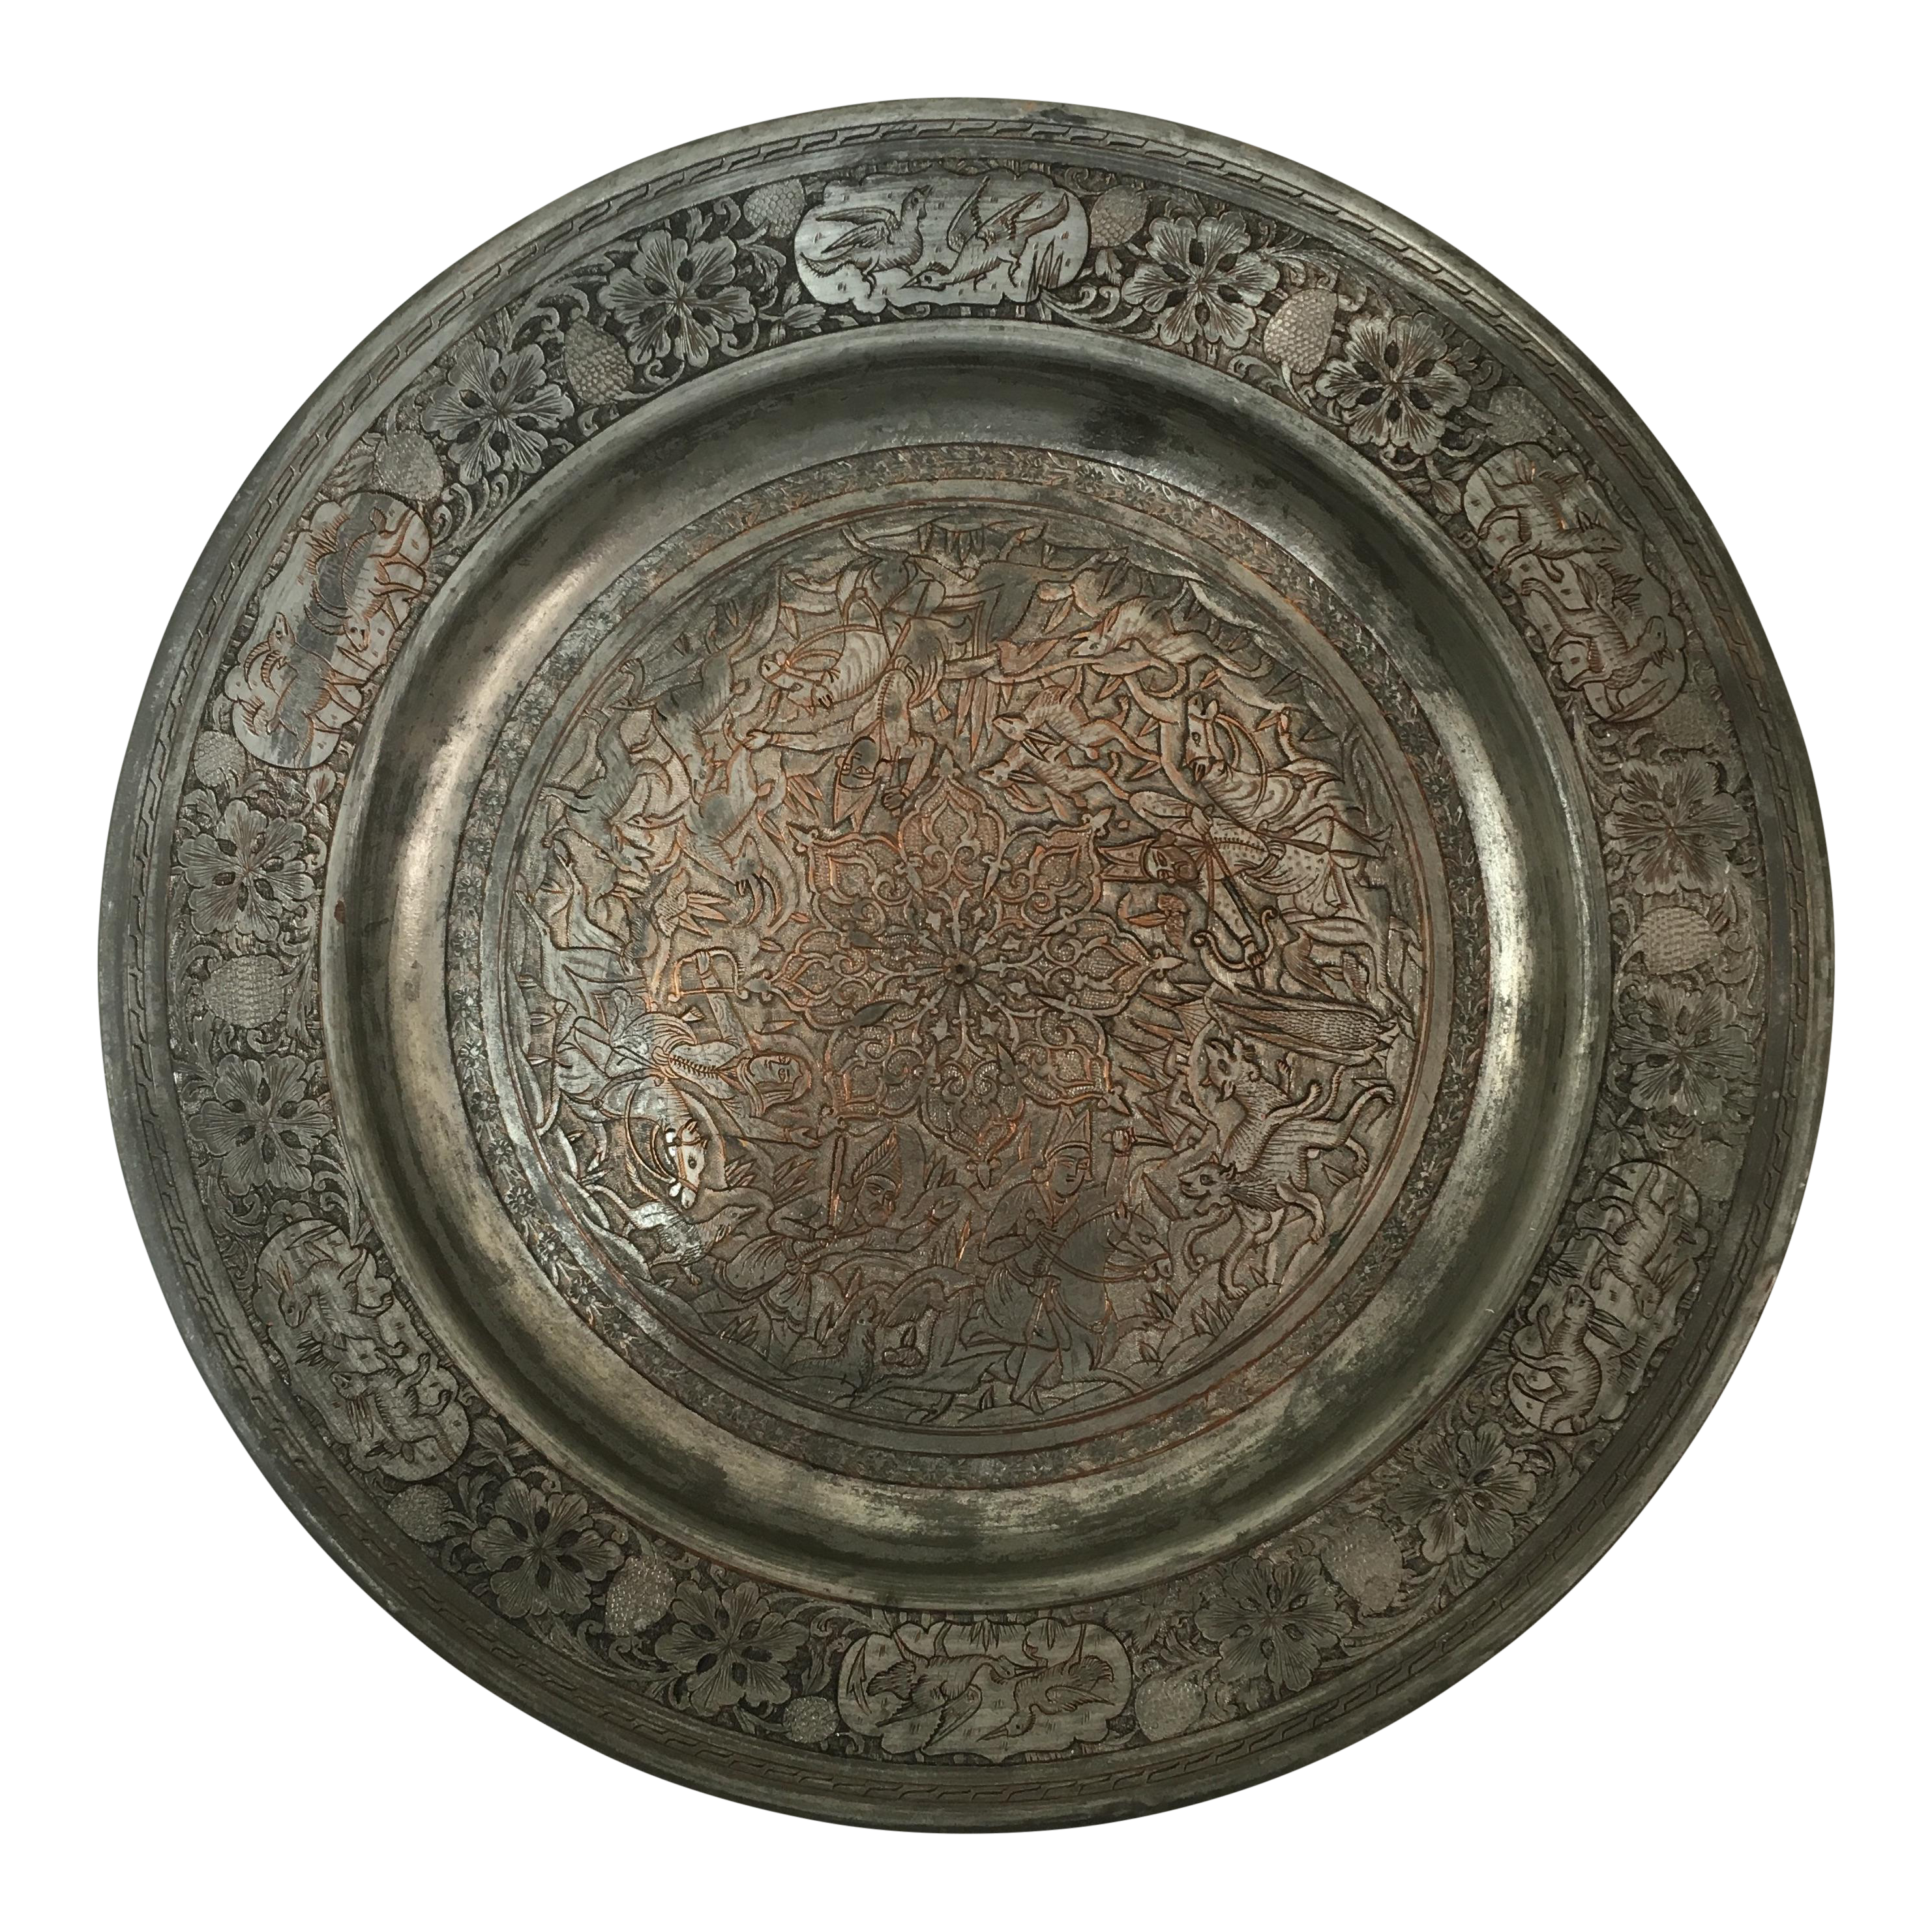 Antique Persian Etched Tinned Copper Plate  sc 1 st  Chairish & Vintage \u0026 Used Copper Decorative Plates | Chairish